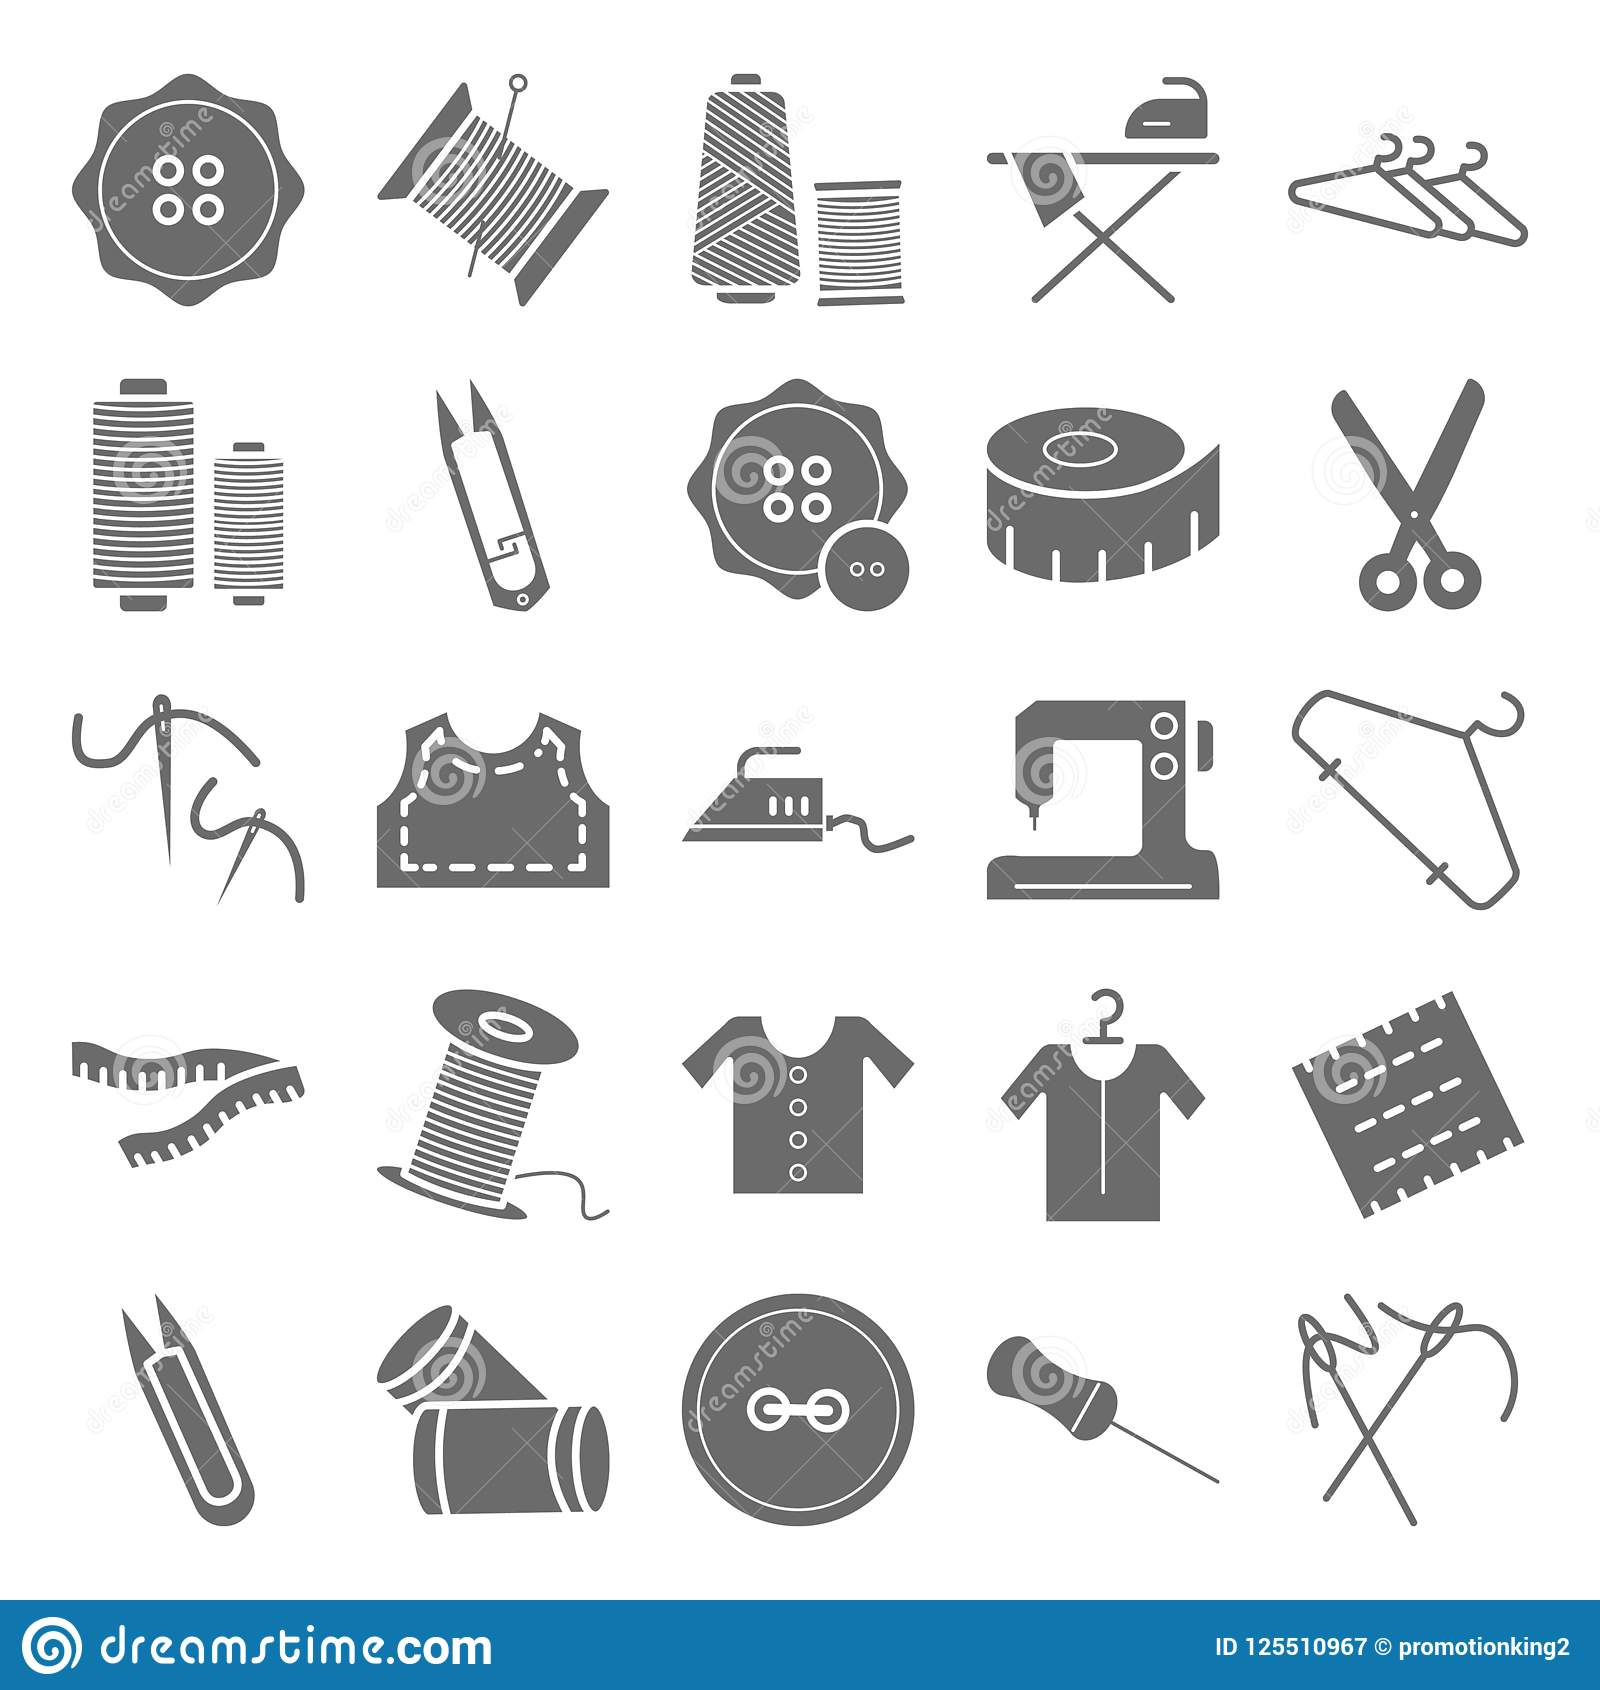 Sewing Material Isolated Vector Icons